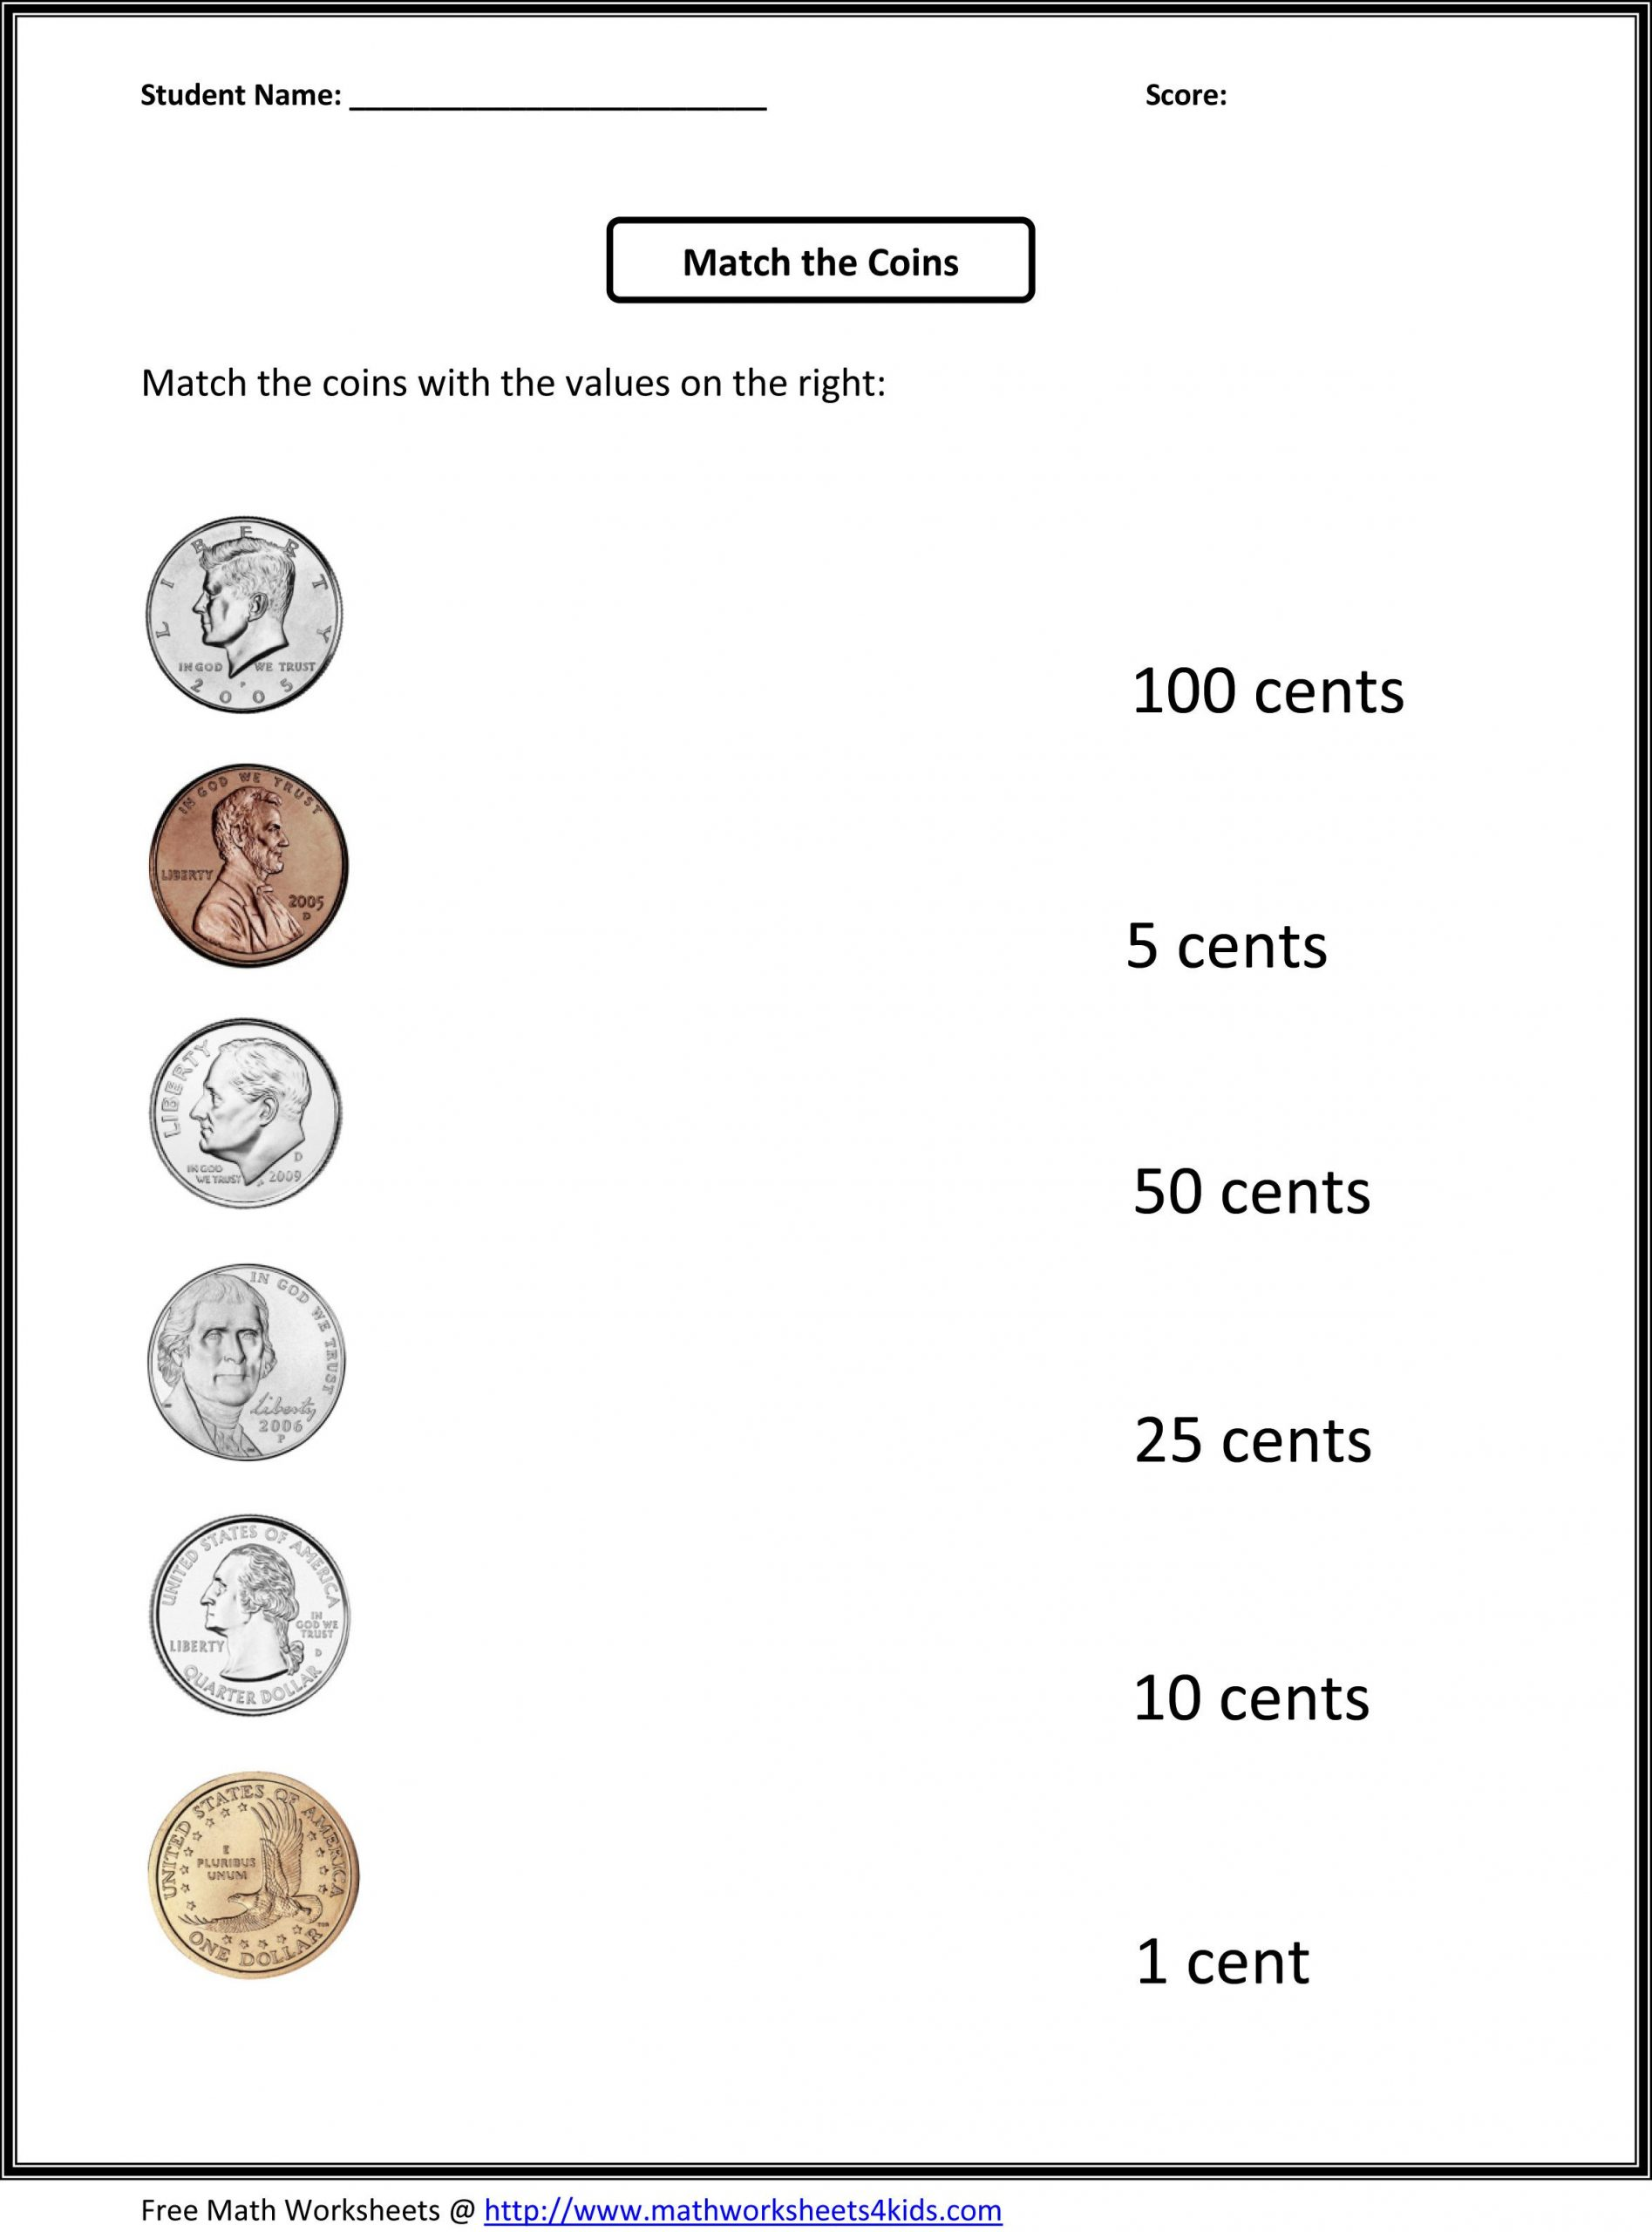 Counting Coins Worksheets First Grade First Grade Math Worksheets